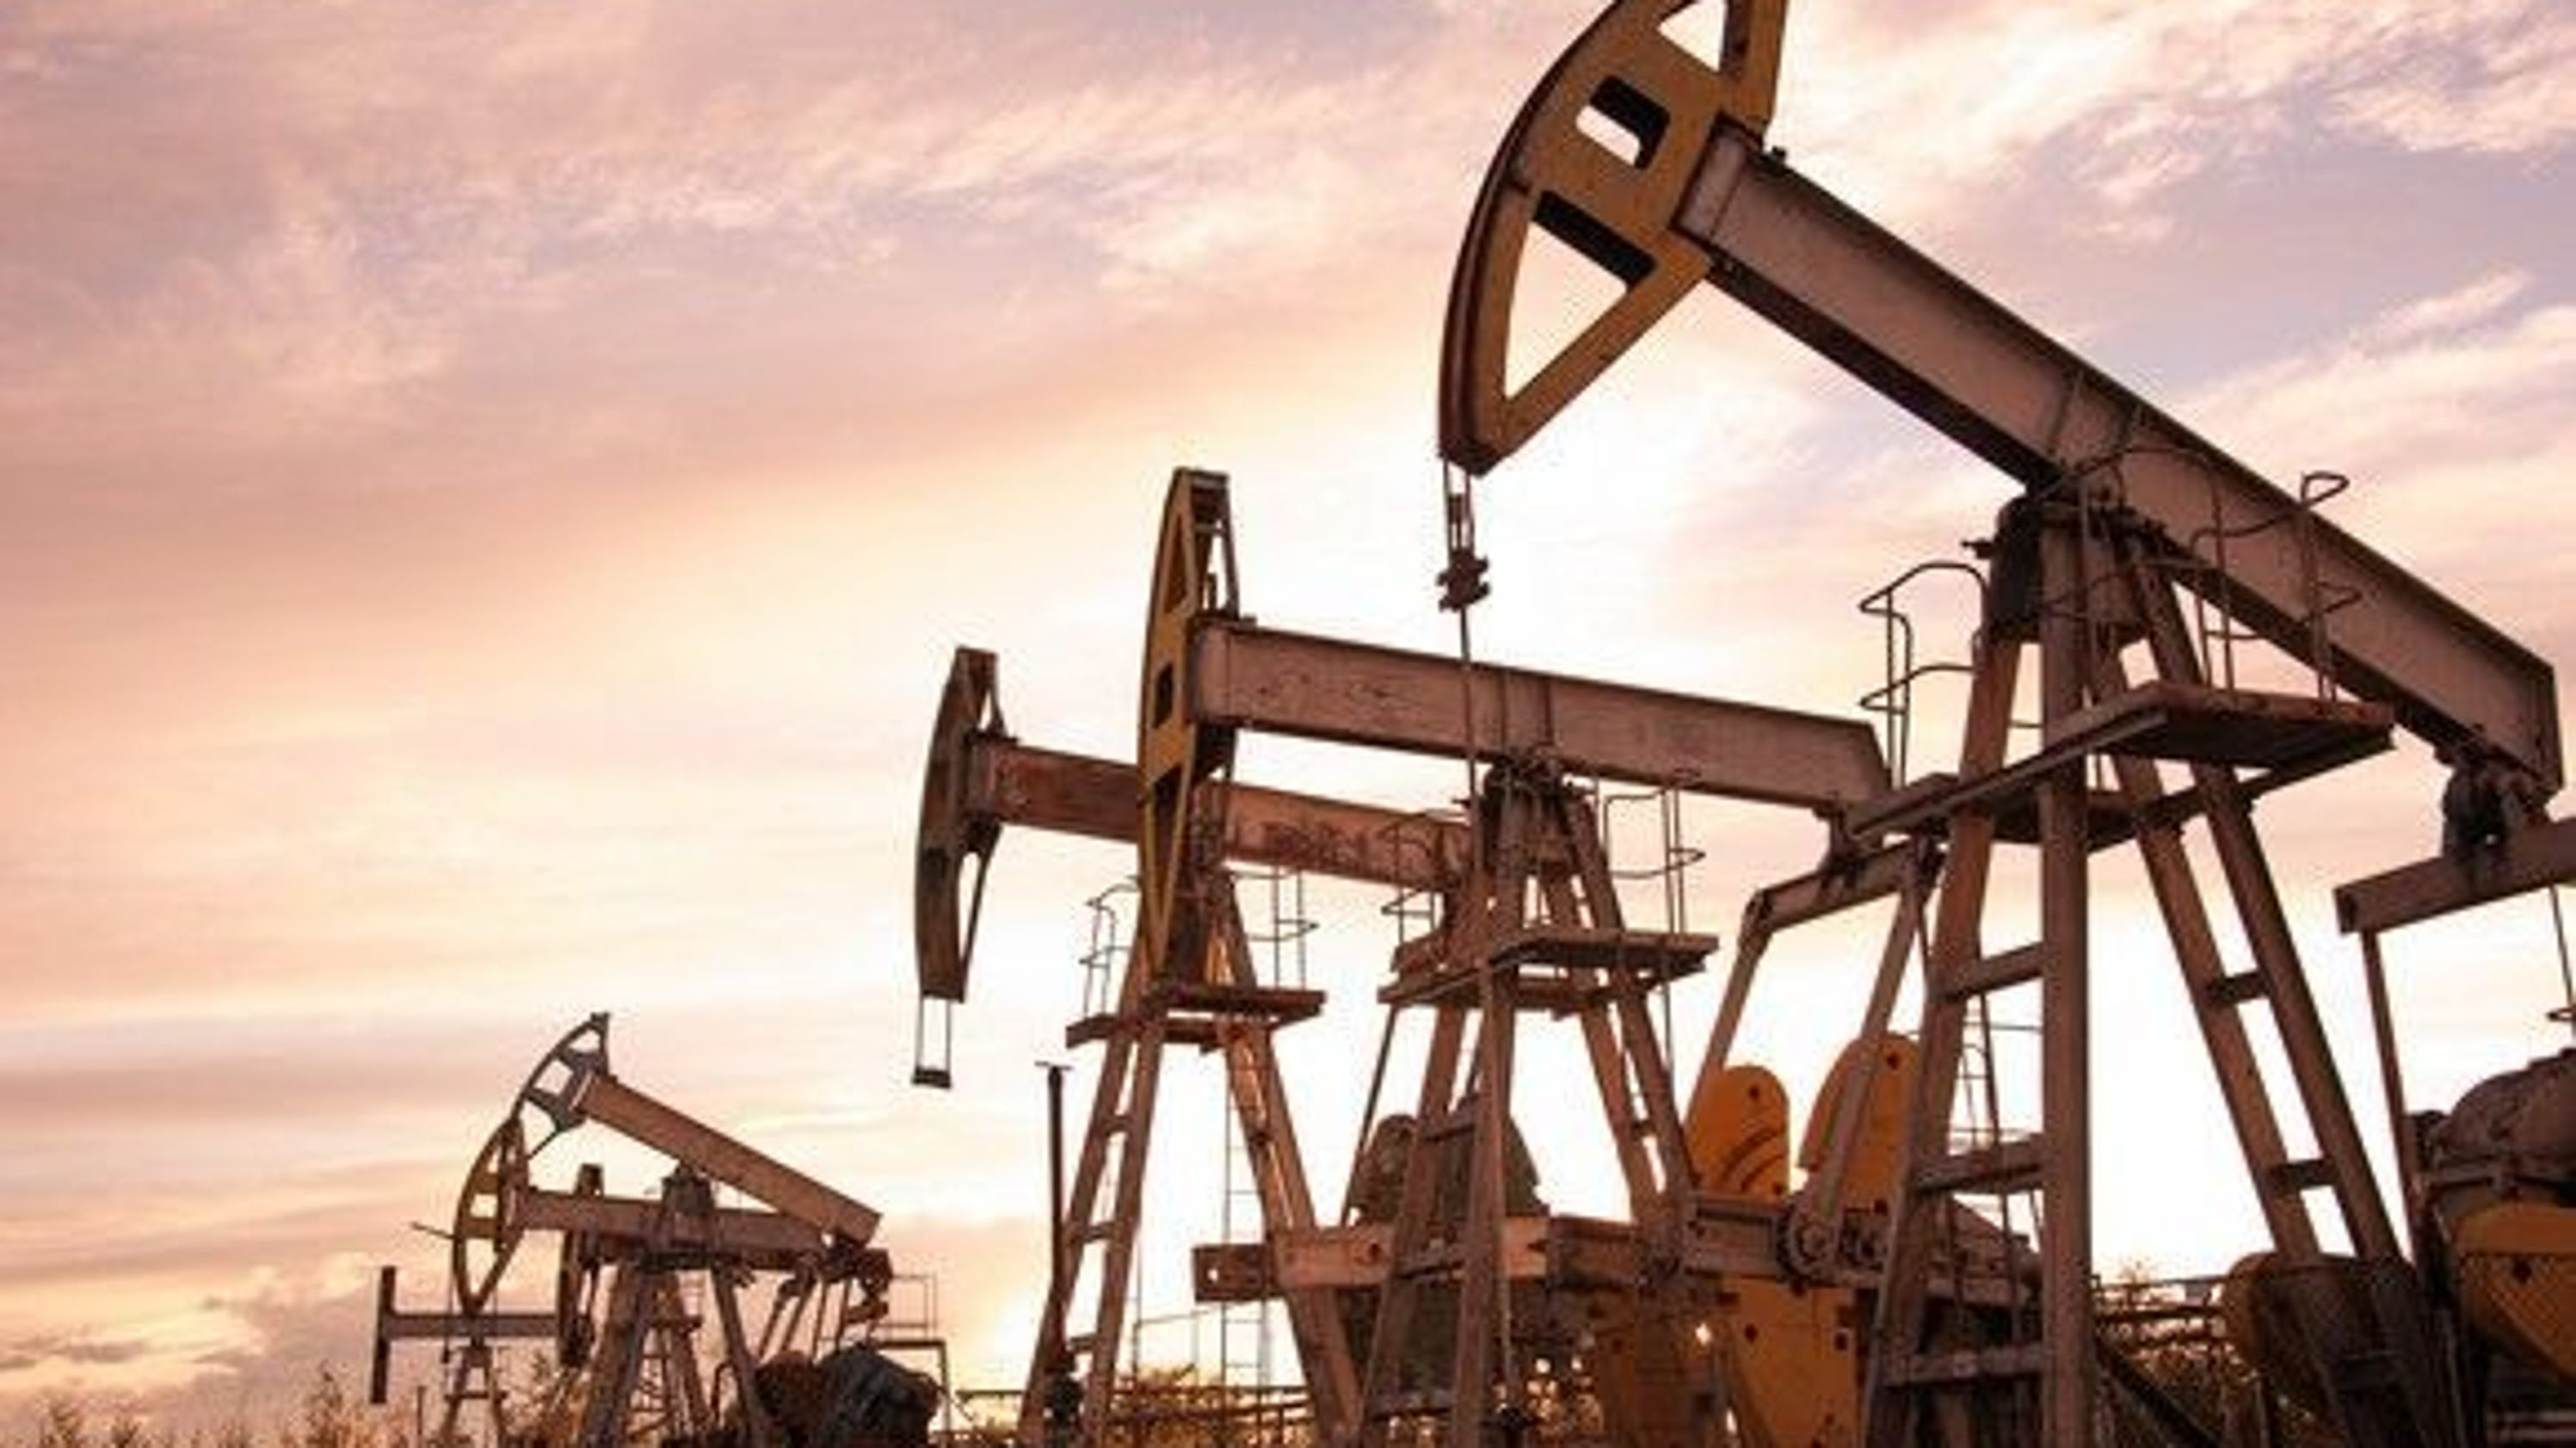 Oil prices hit the skids, slips back into bear territory